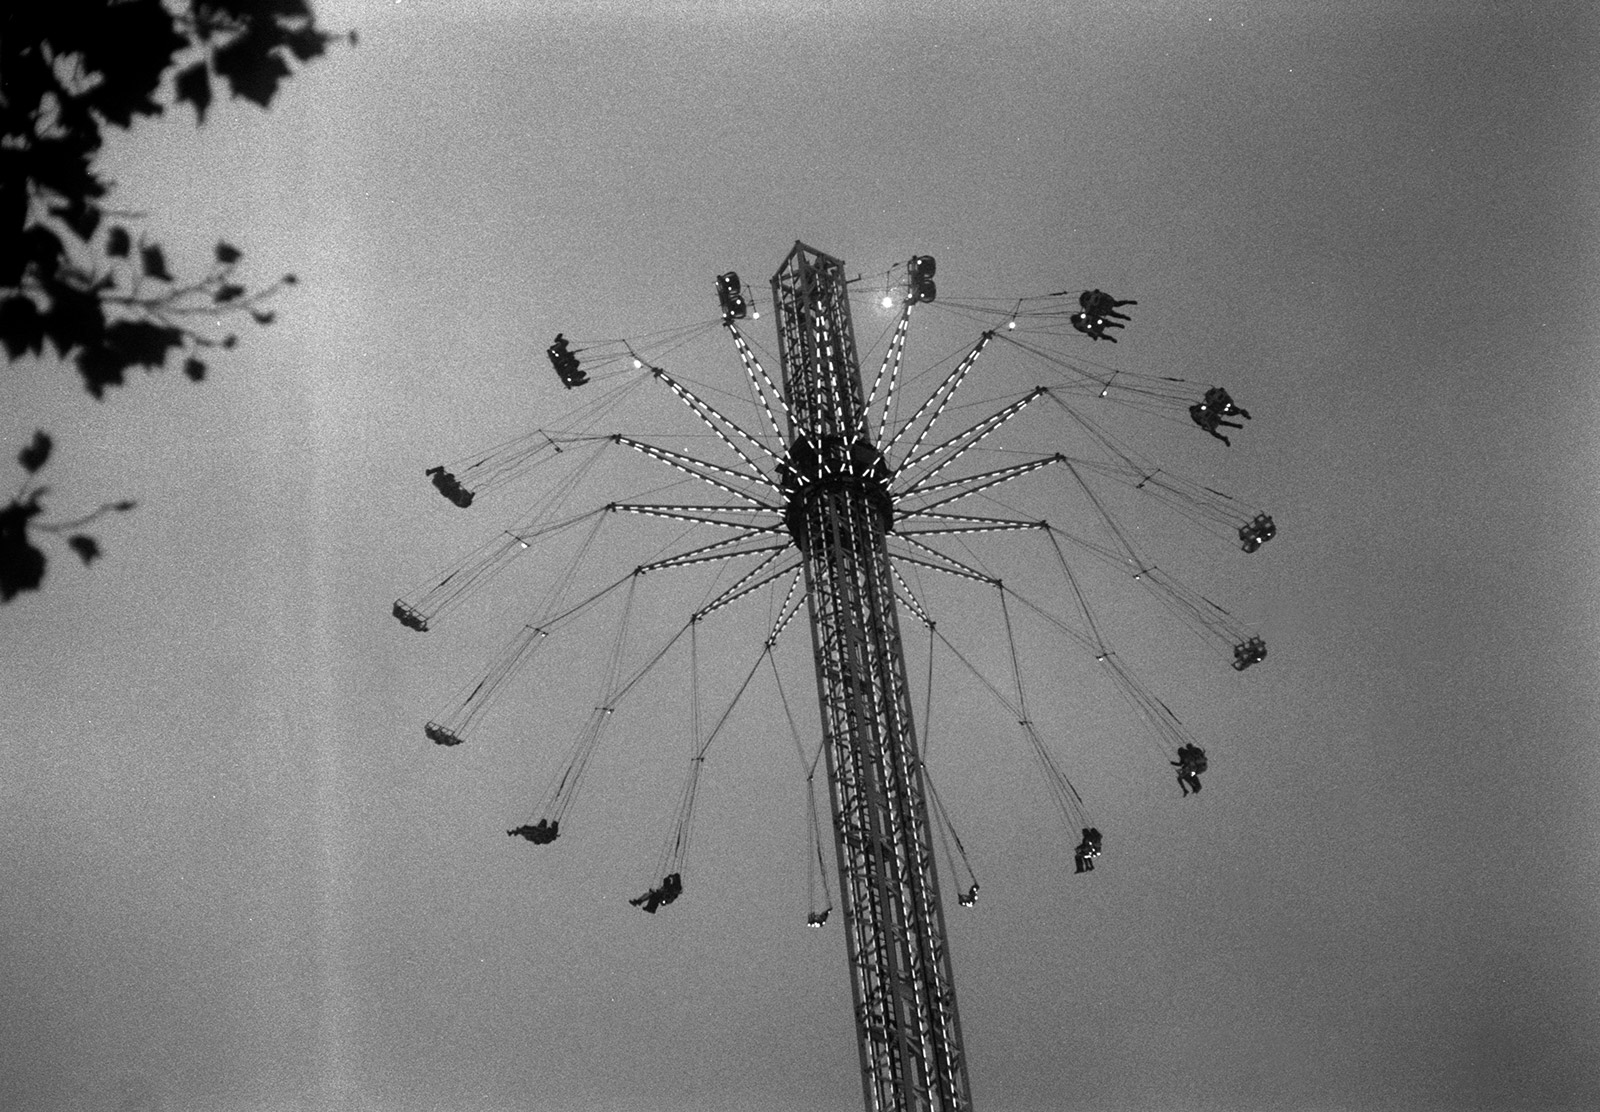 Tall fairground ride